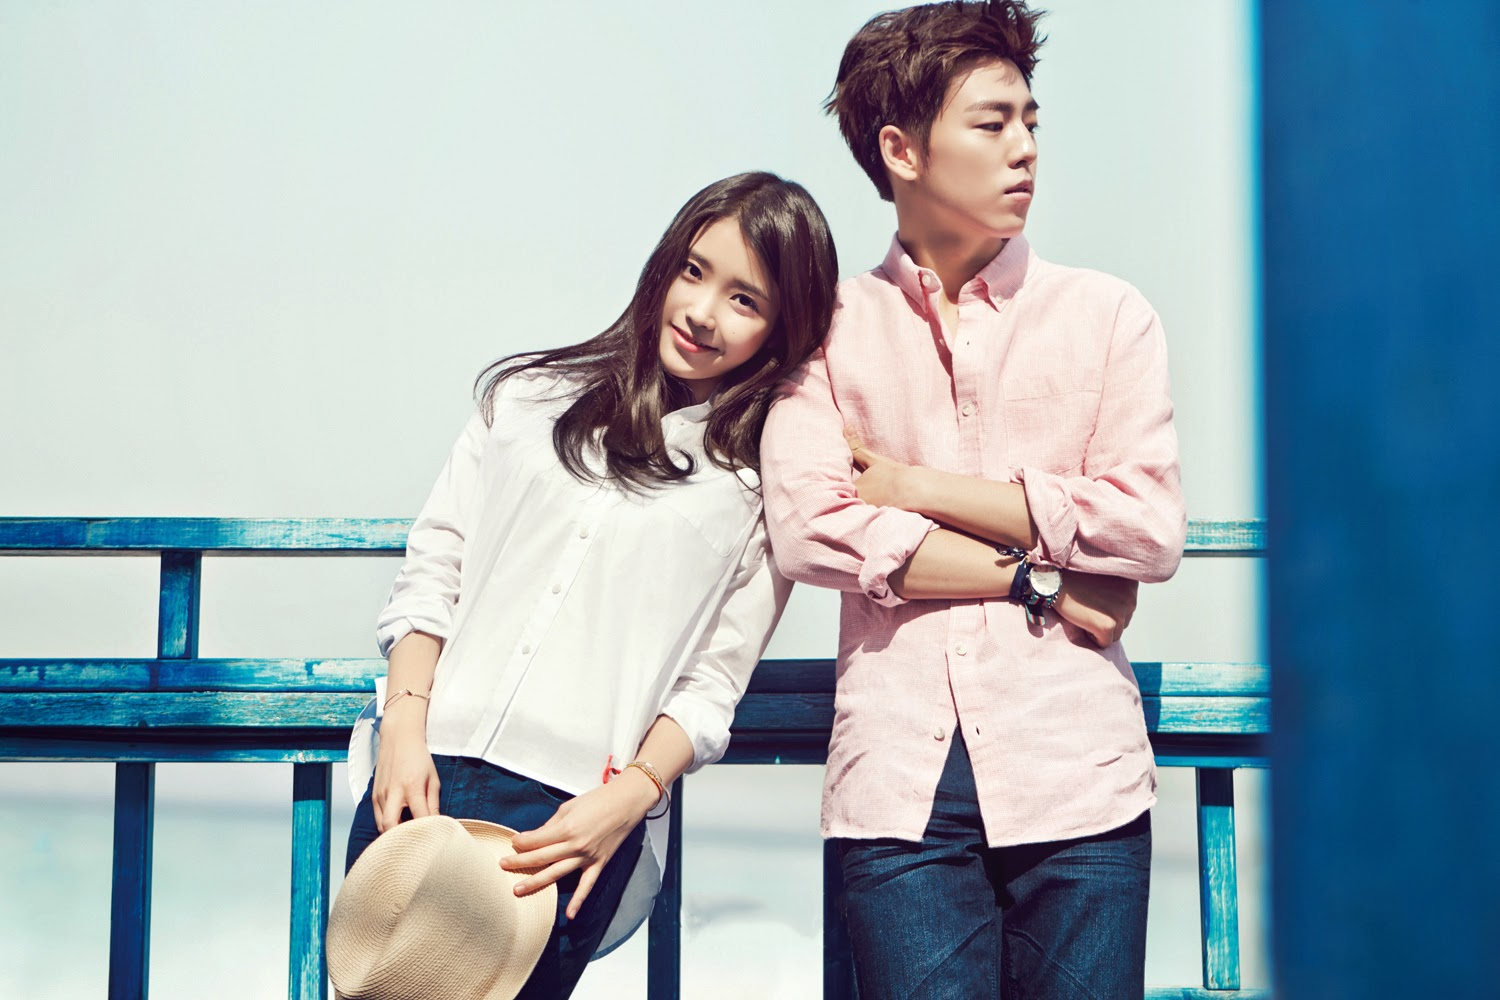 Lee Hyun Woo and IU are a refreshing summer couple for